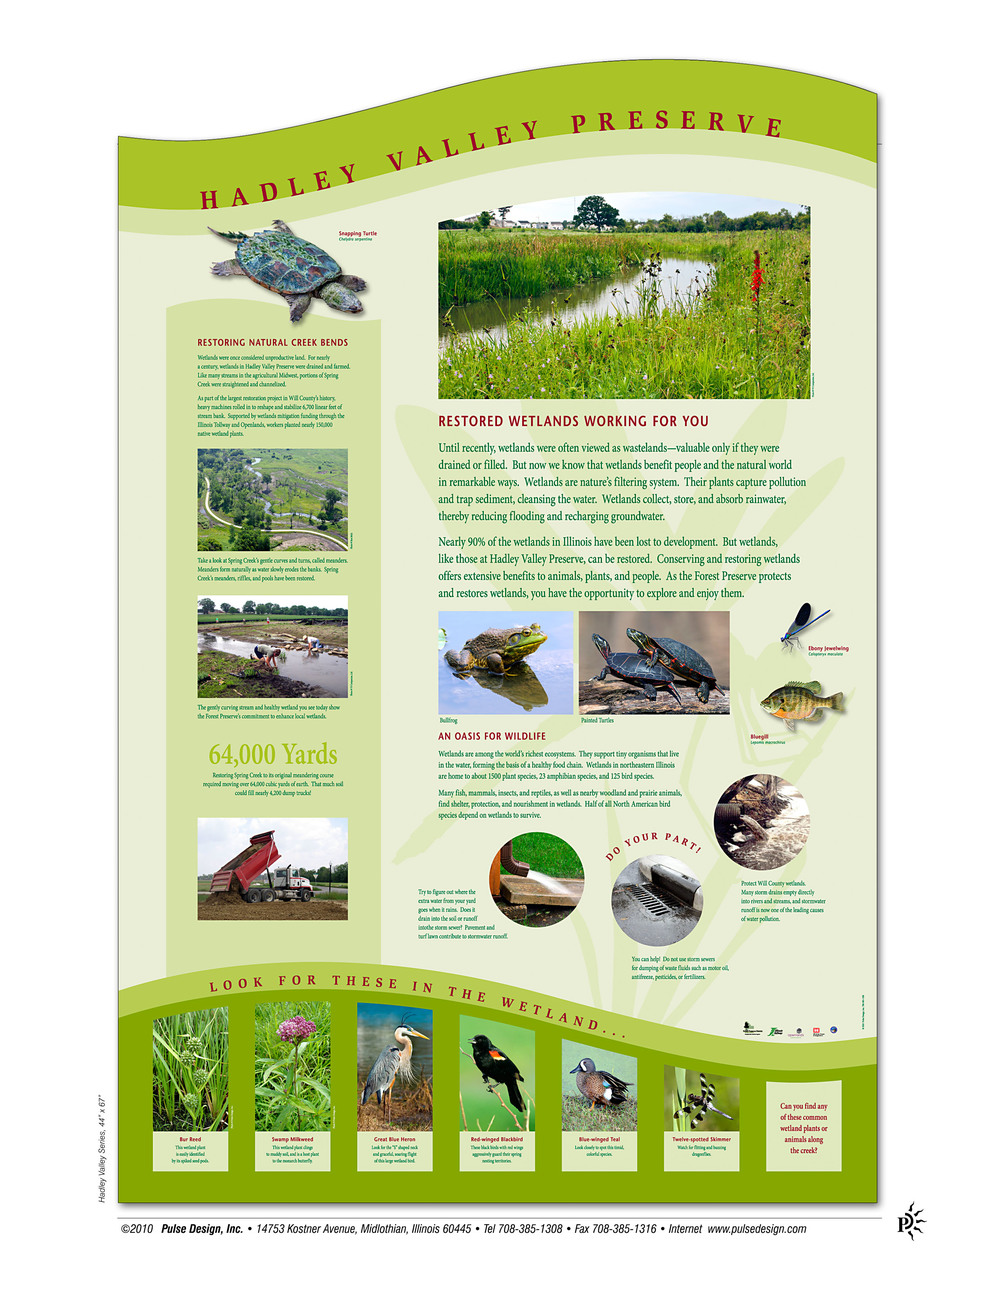 Hadley-Valley-Trail-Sign-Dragonfly-Panel-Pulse-Design-Inc.jpg